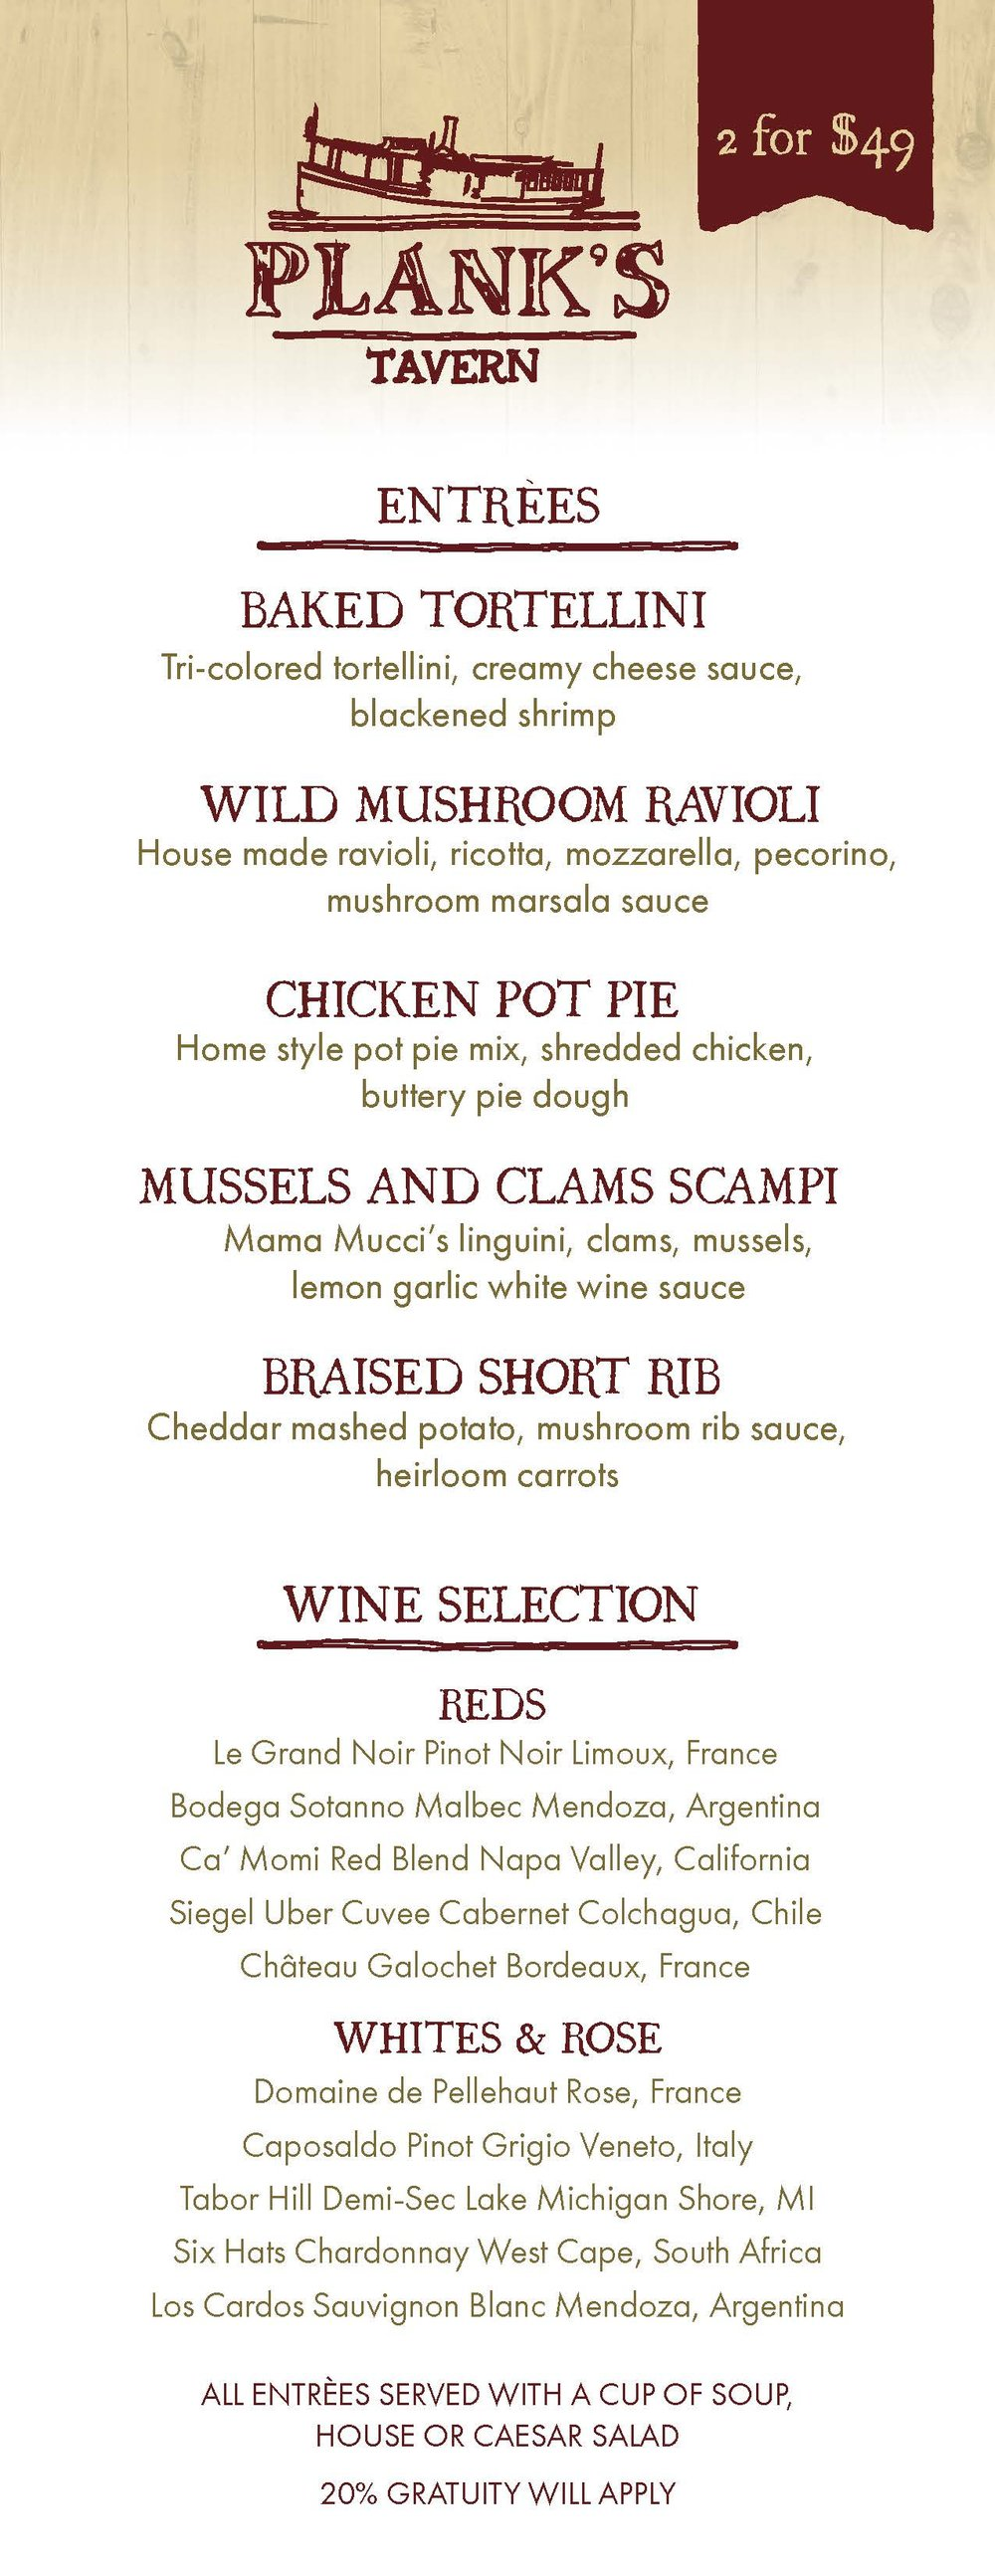 menu (updated).jpg